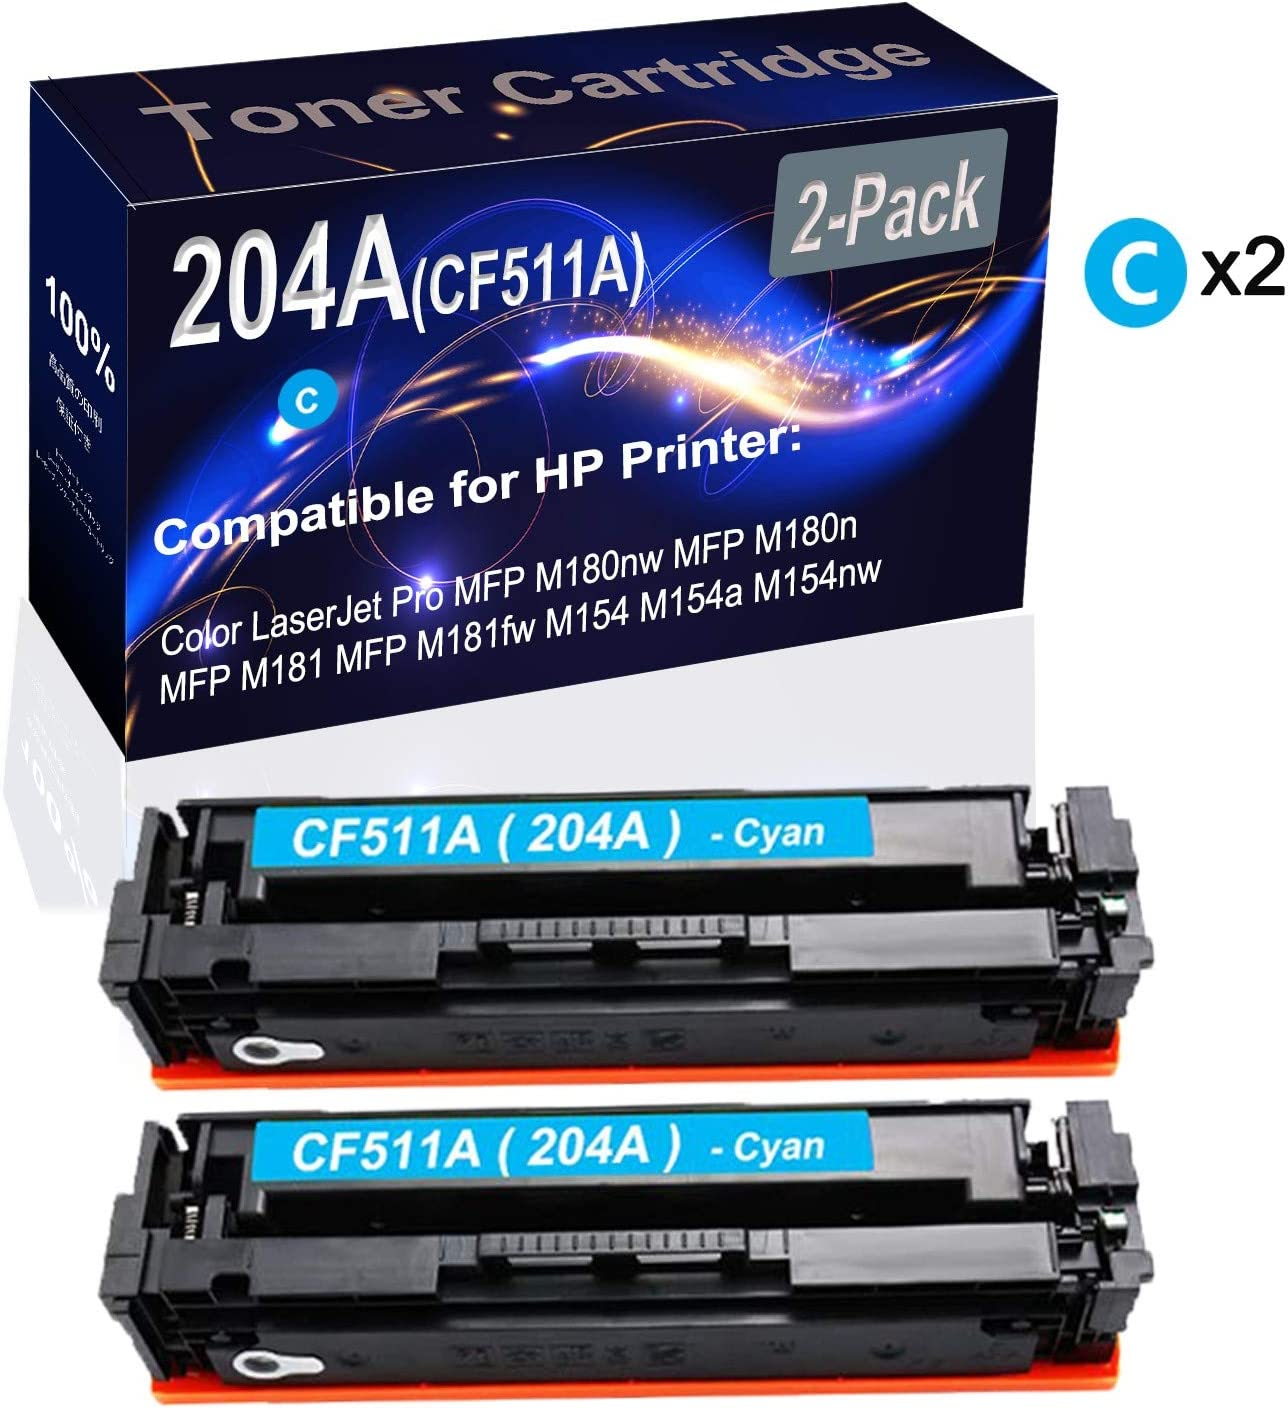 2-Pack (Cyan) Compatible High Yield 204A (CF511A) Printer Toner Cartridge use for HP MFP M180nw MFP M180n MFP M181 M154nw Printers